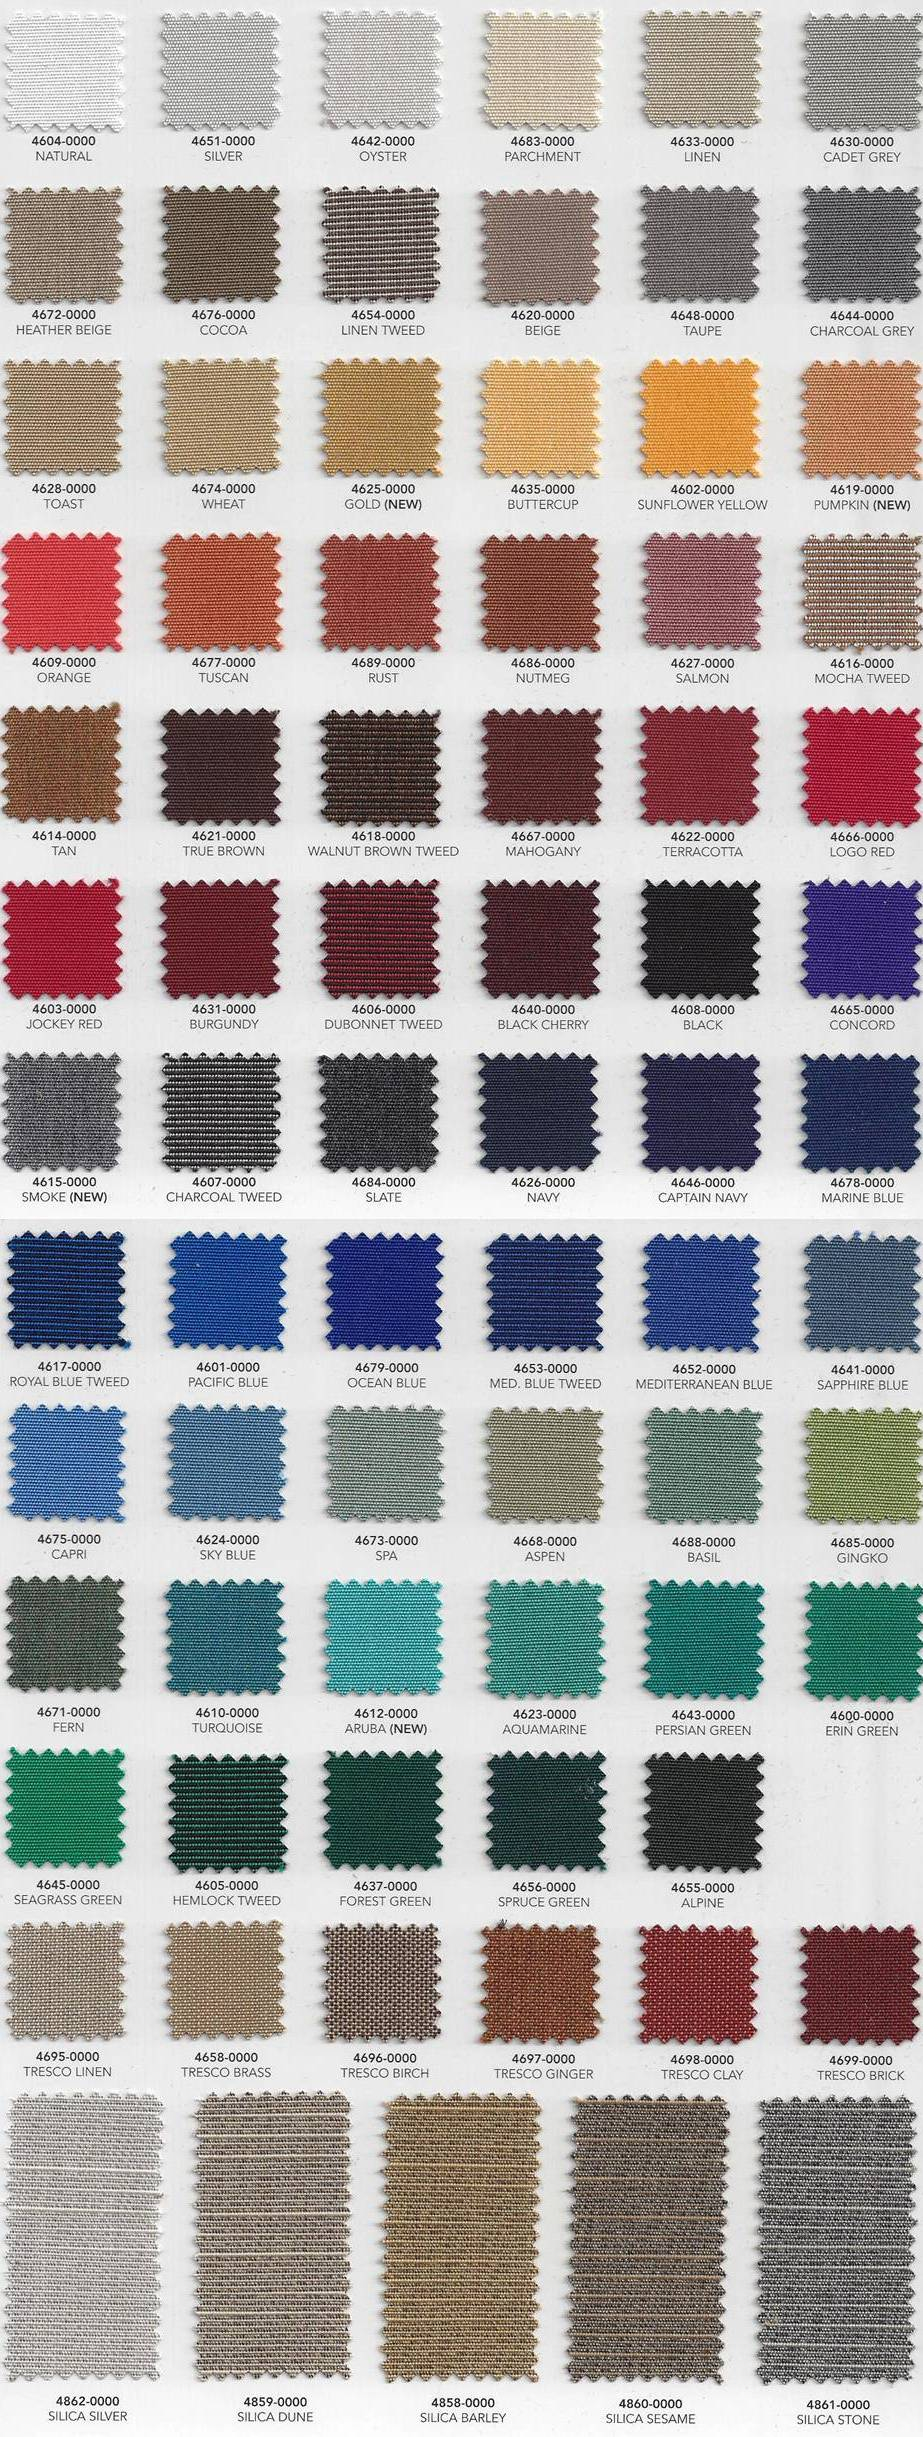 Marine Products Sunbrella Color Samples Shipshape Products Inc Boat And Marine Canvas And Upholstery